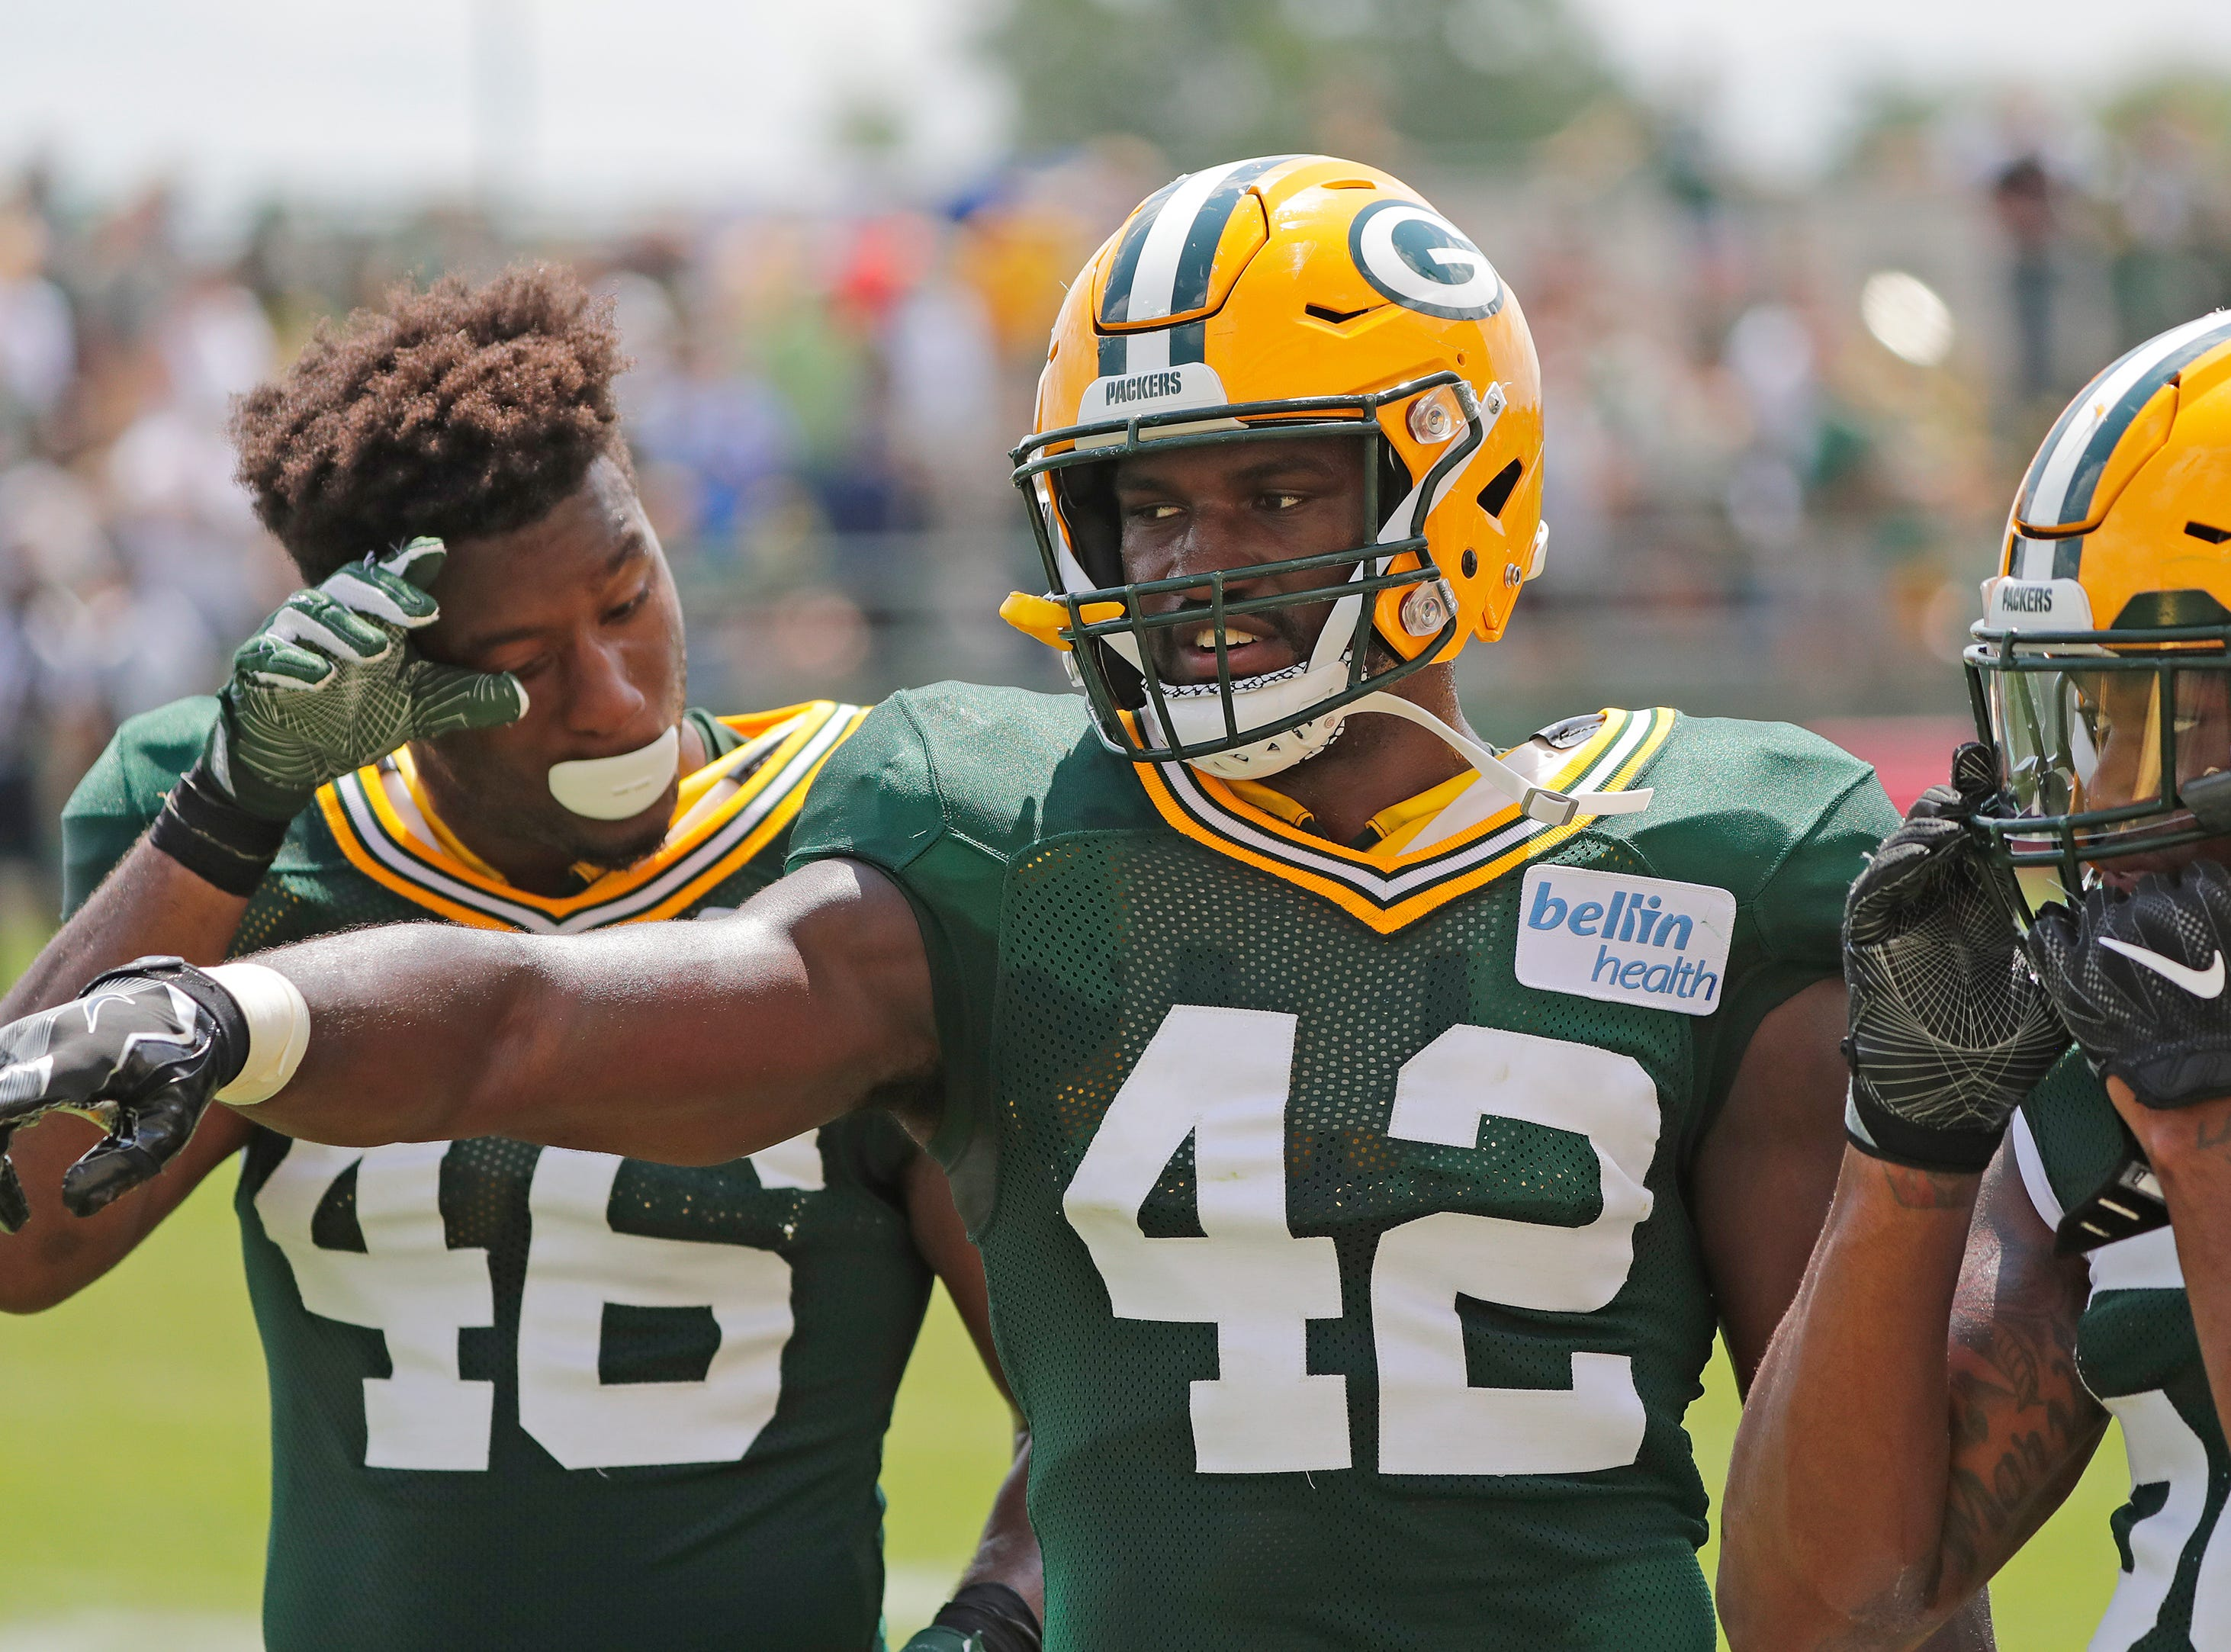 Green Bay Packers linebacker Oren Burks (42) talks to teammates during a drill at training camp practice at Ray Nitschke Field on Friday, August 3, 2018 in Ashwaubenon, Wis. 